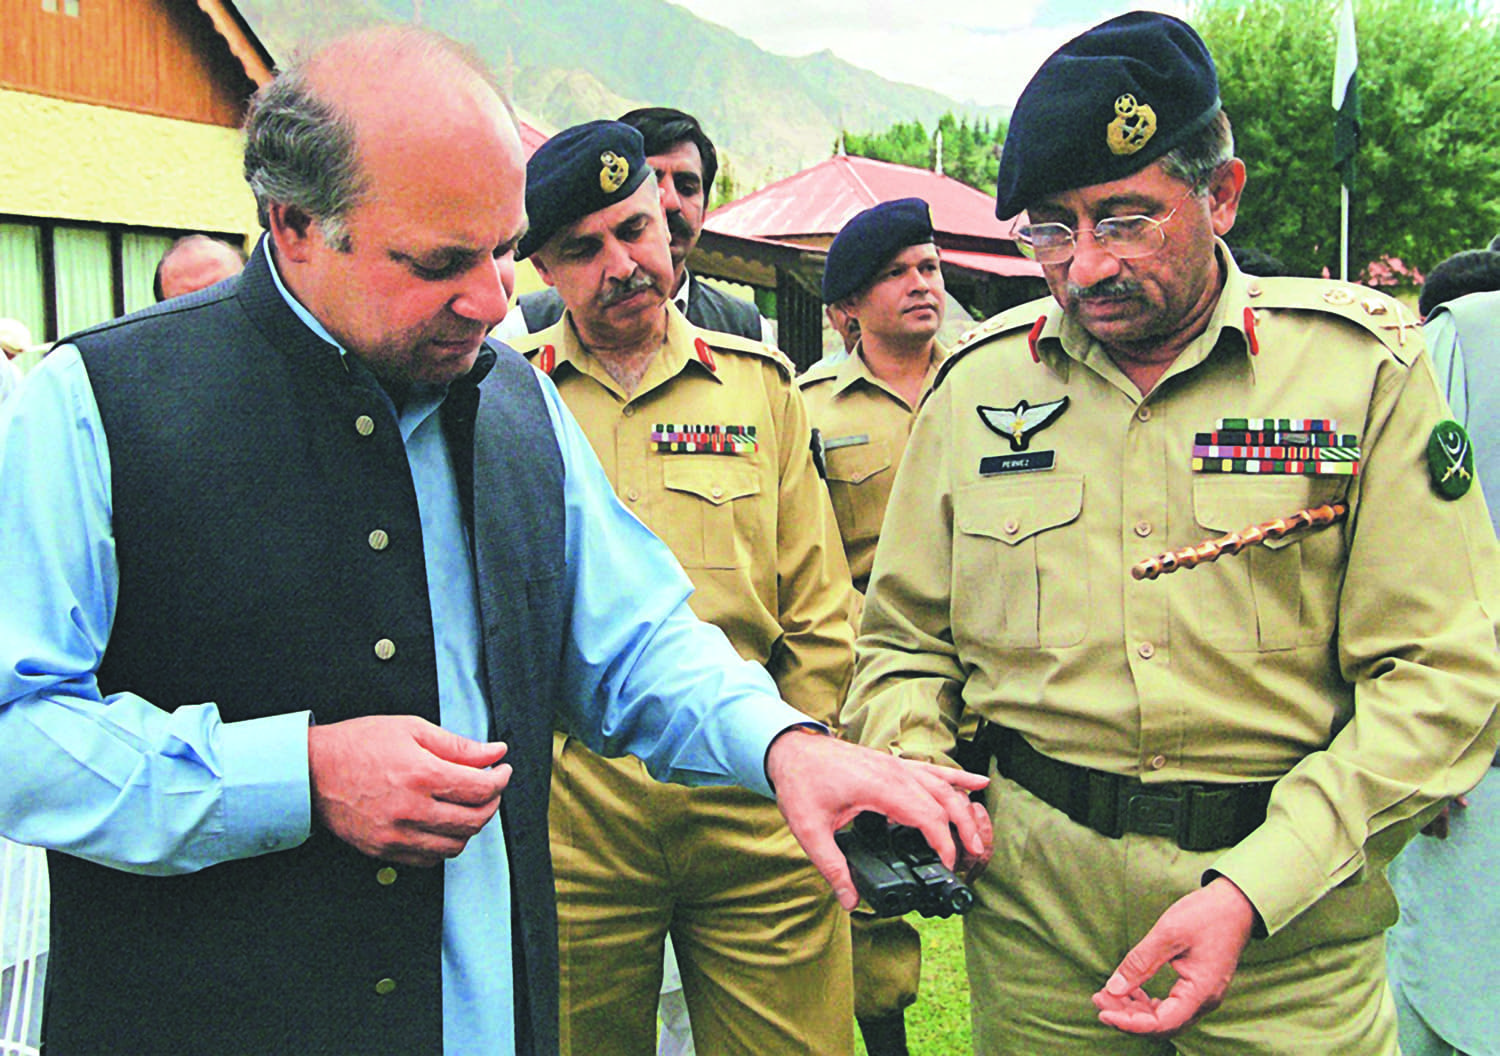 Prime minister Nawaz Sharif in September 1999 with chief of army staff General Pervez Musharraf was in Skardu visiting the families of the soldiers who had lost their lives during the Kargil conflict. Barely a month later, the government was sent packing, bringing the curtain down on the second Sharif term.